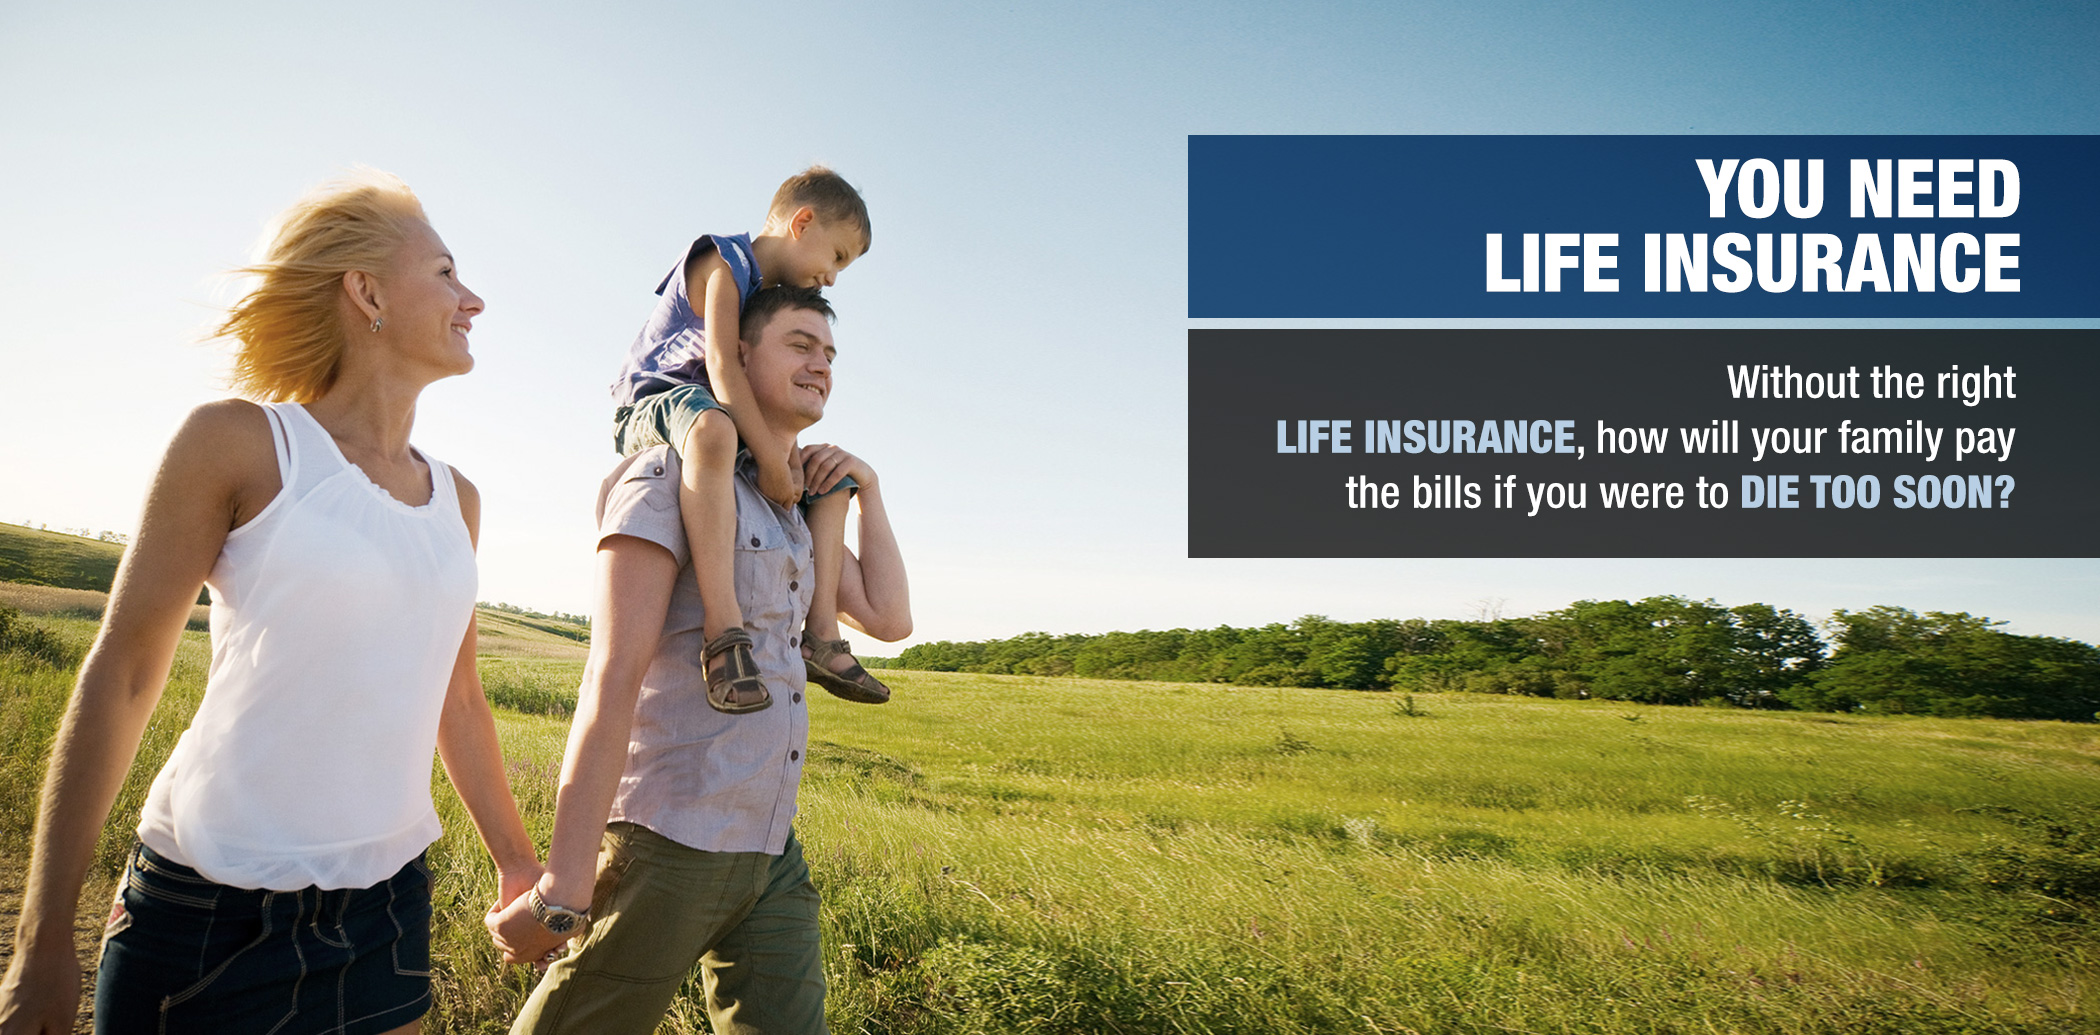 You need life insurance